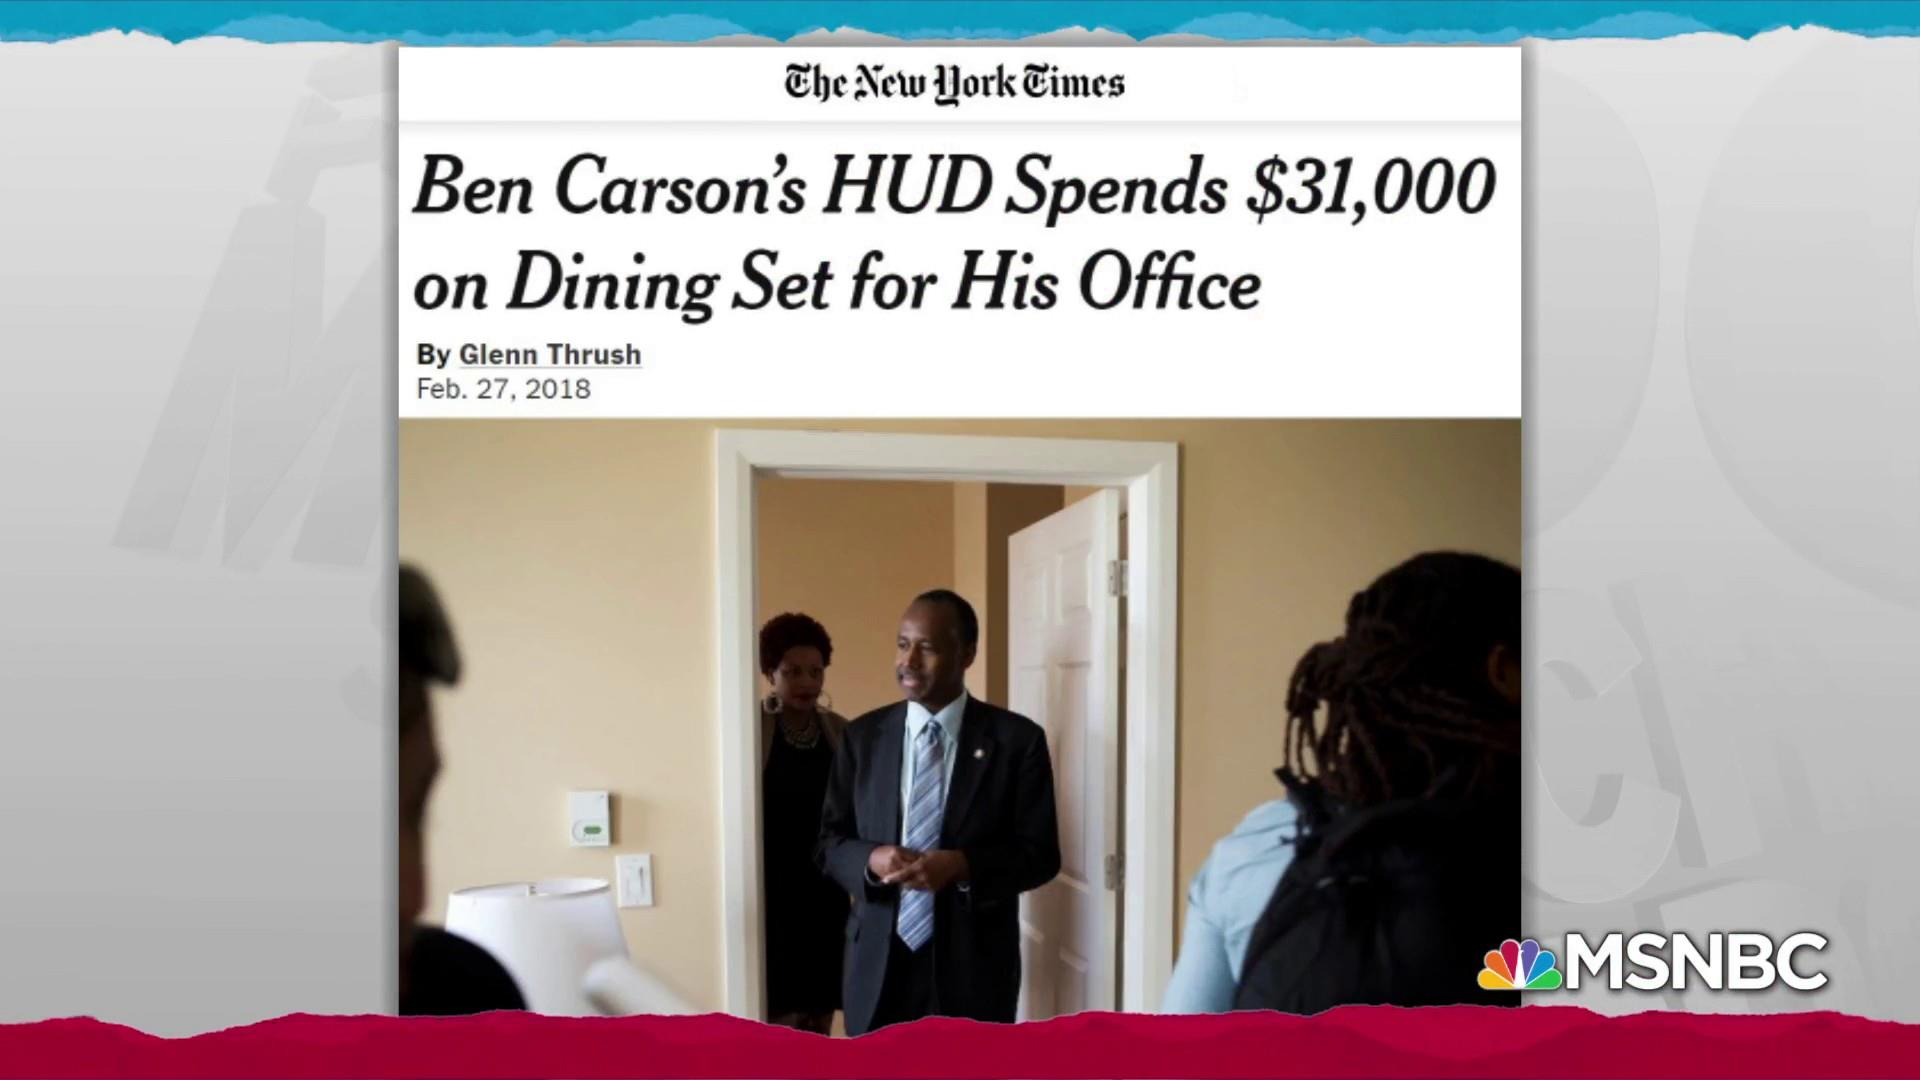 Ben Carson's extravagant spending broke the law: GAO